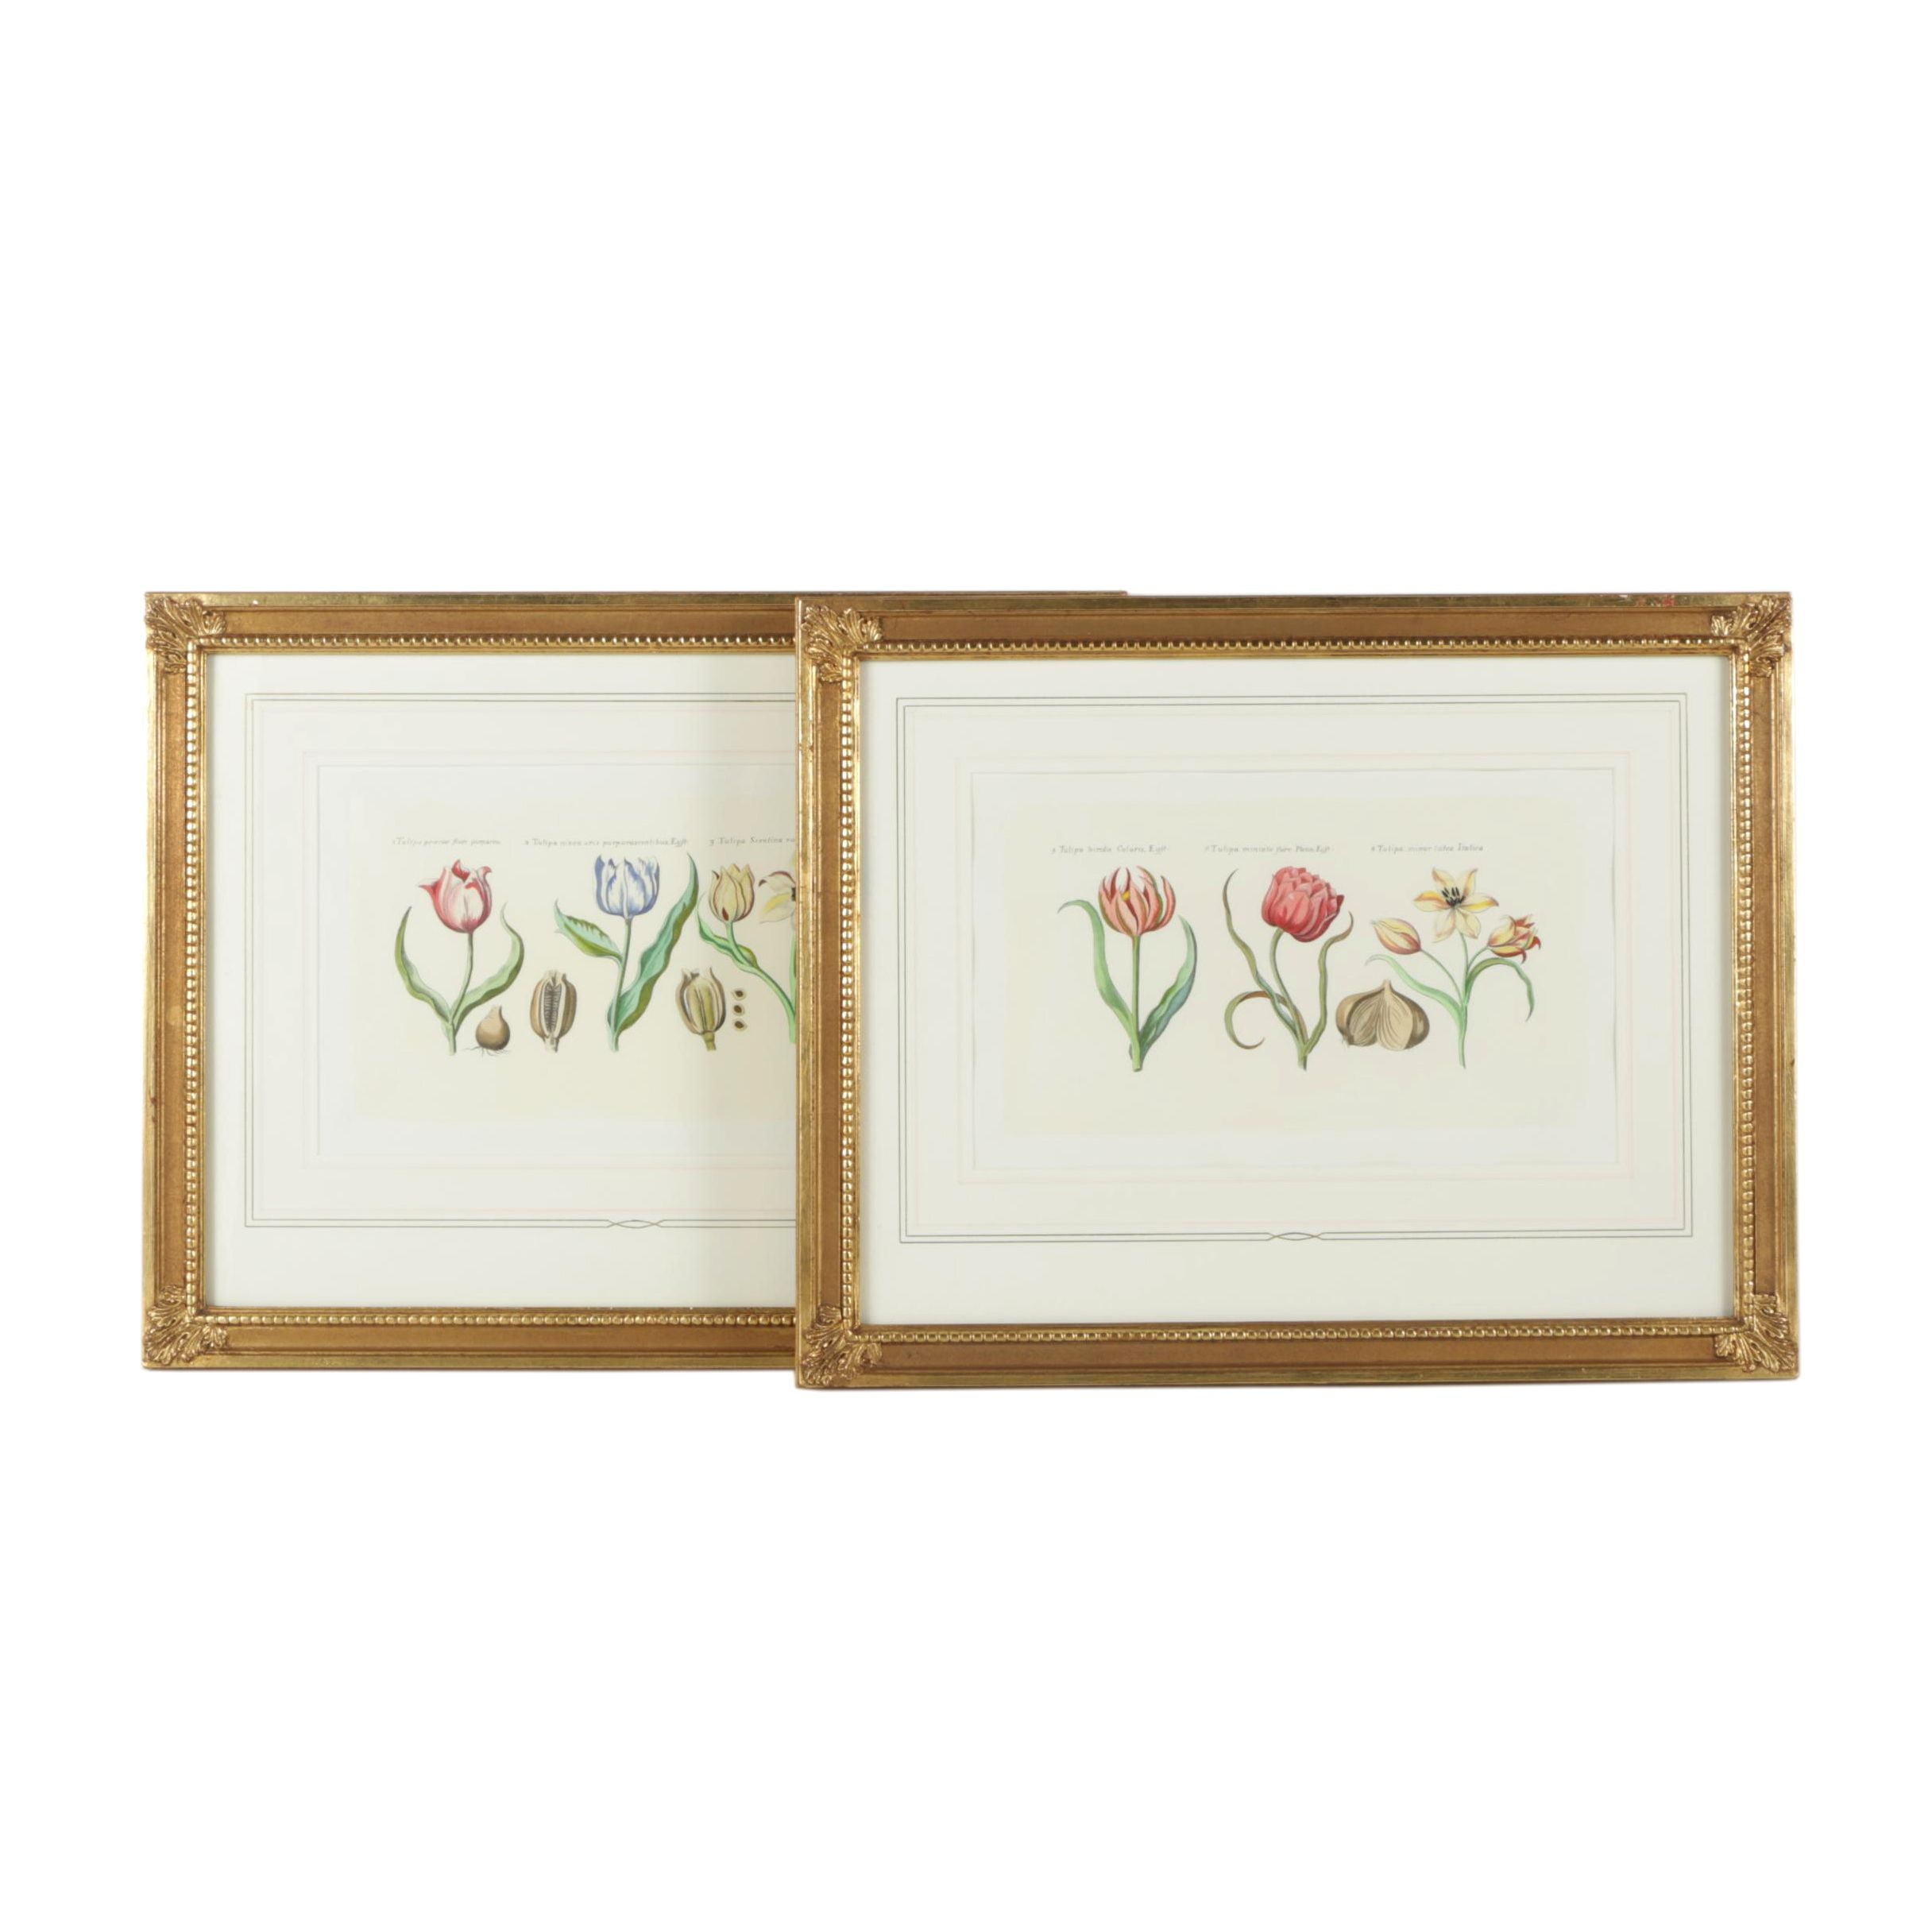 Hand Colored Halftone Prints of Tulips